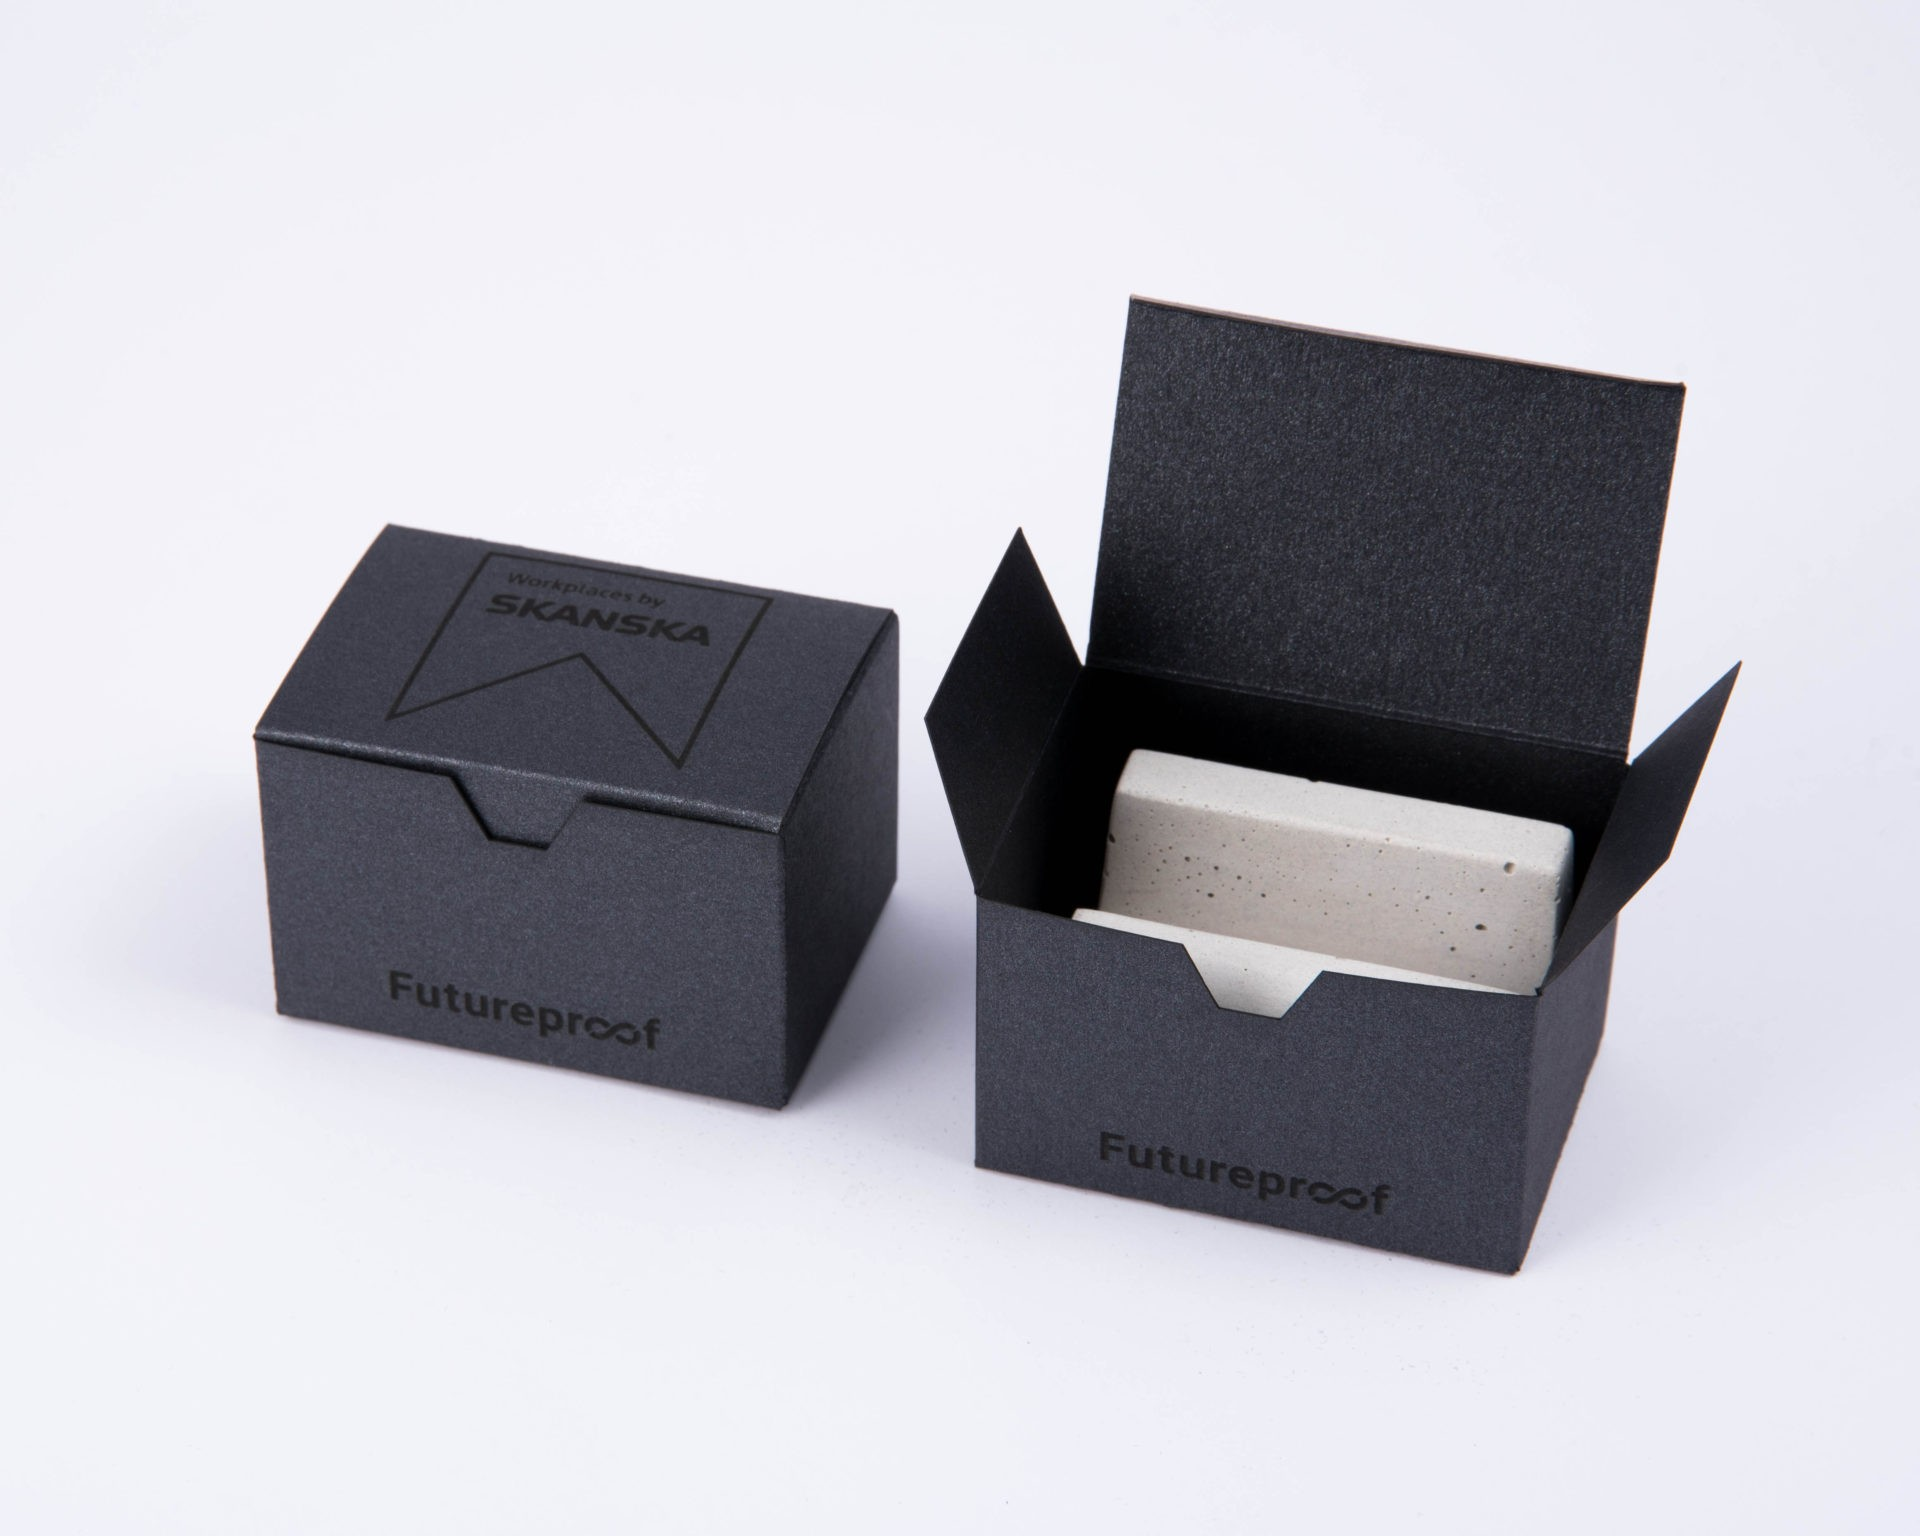 Customized packaging for Skanska's business gift collection